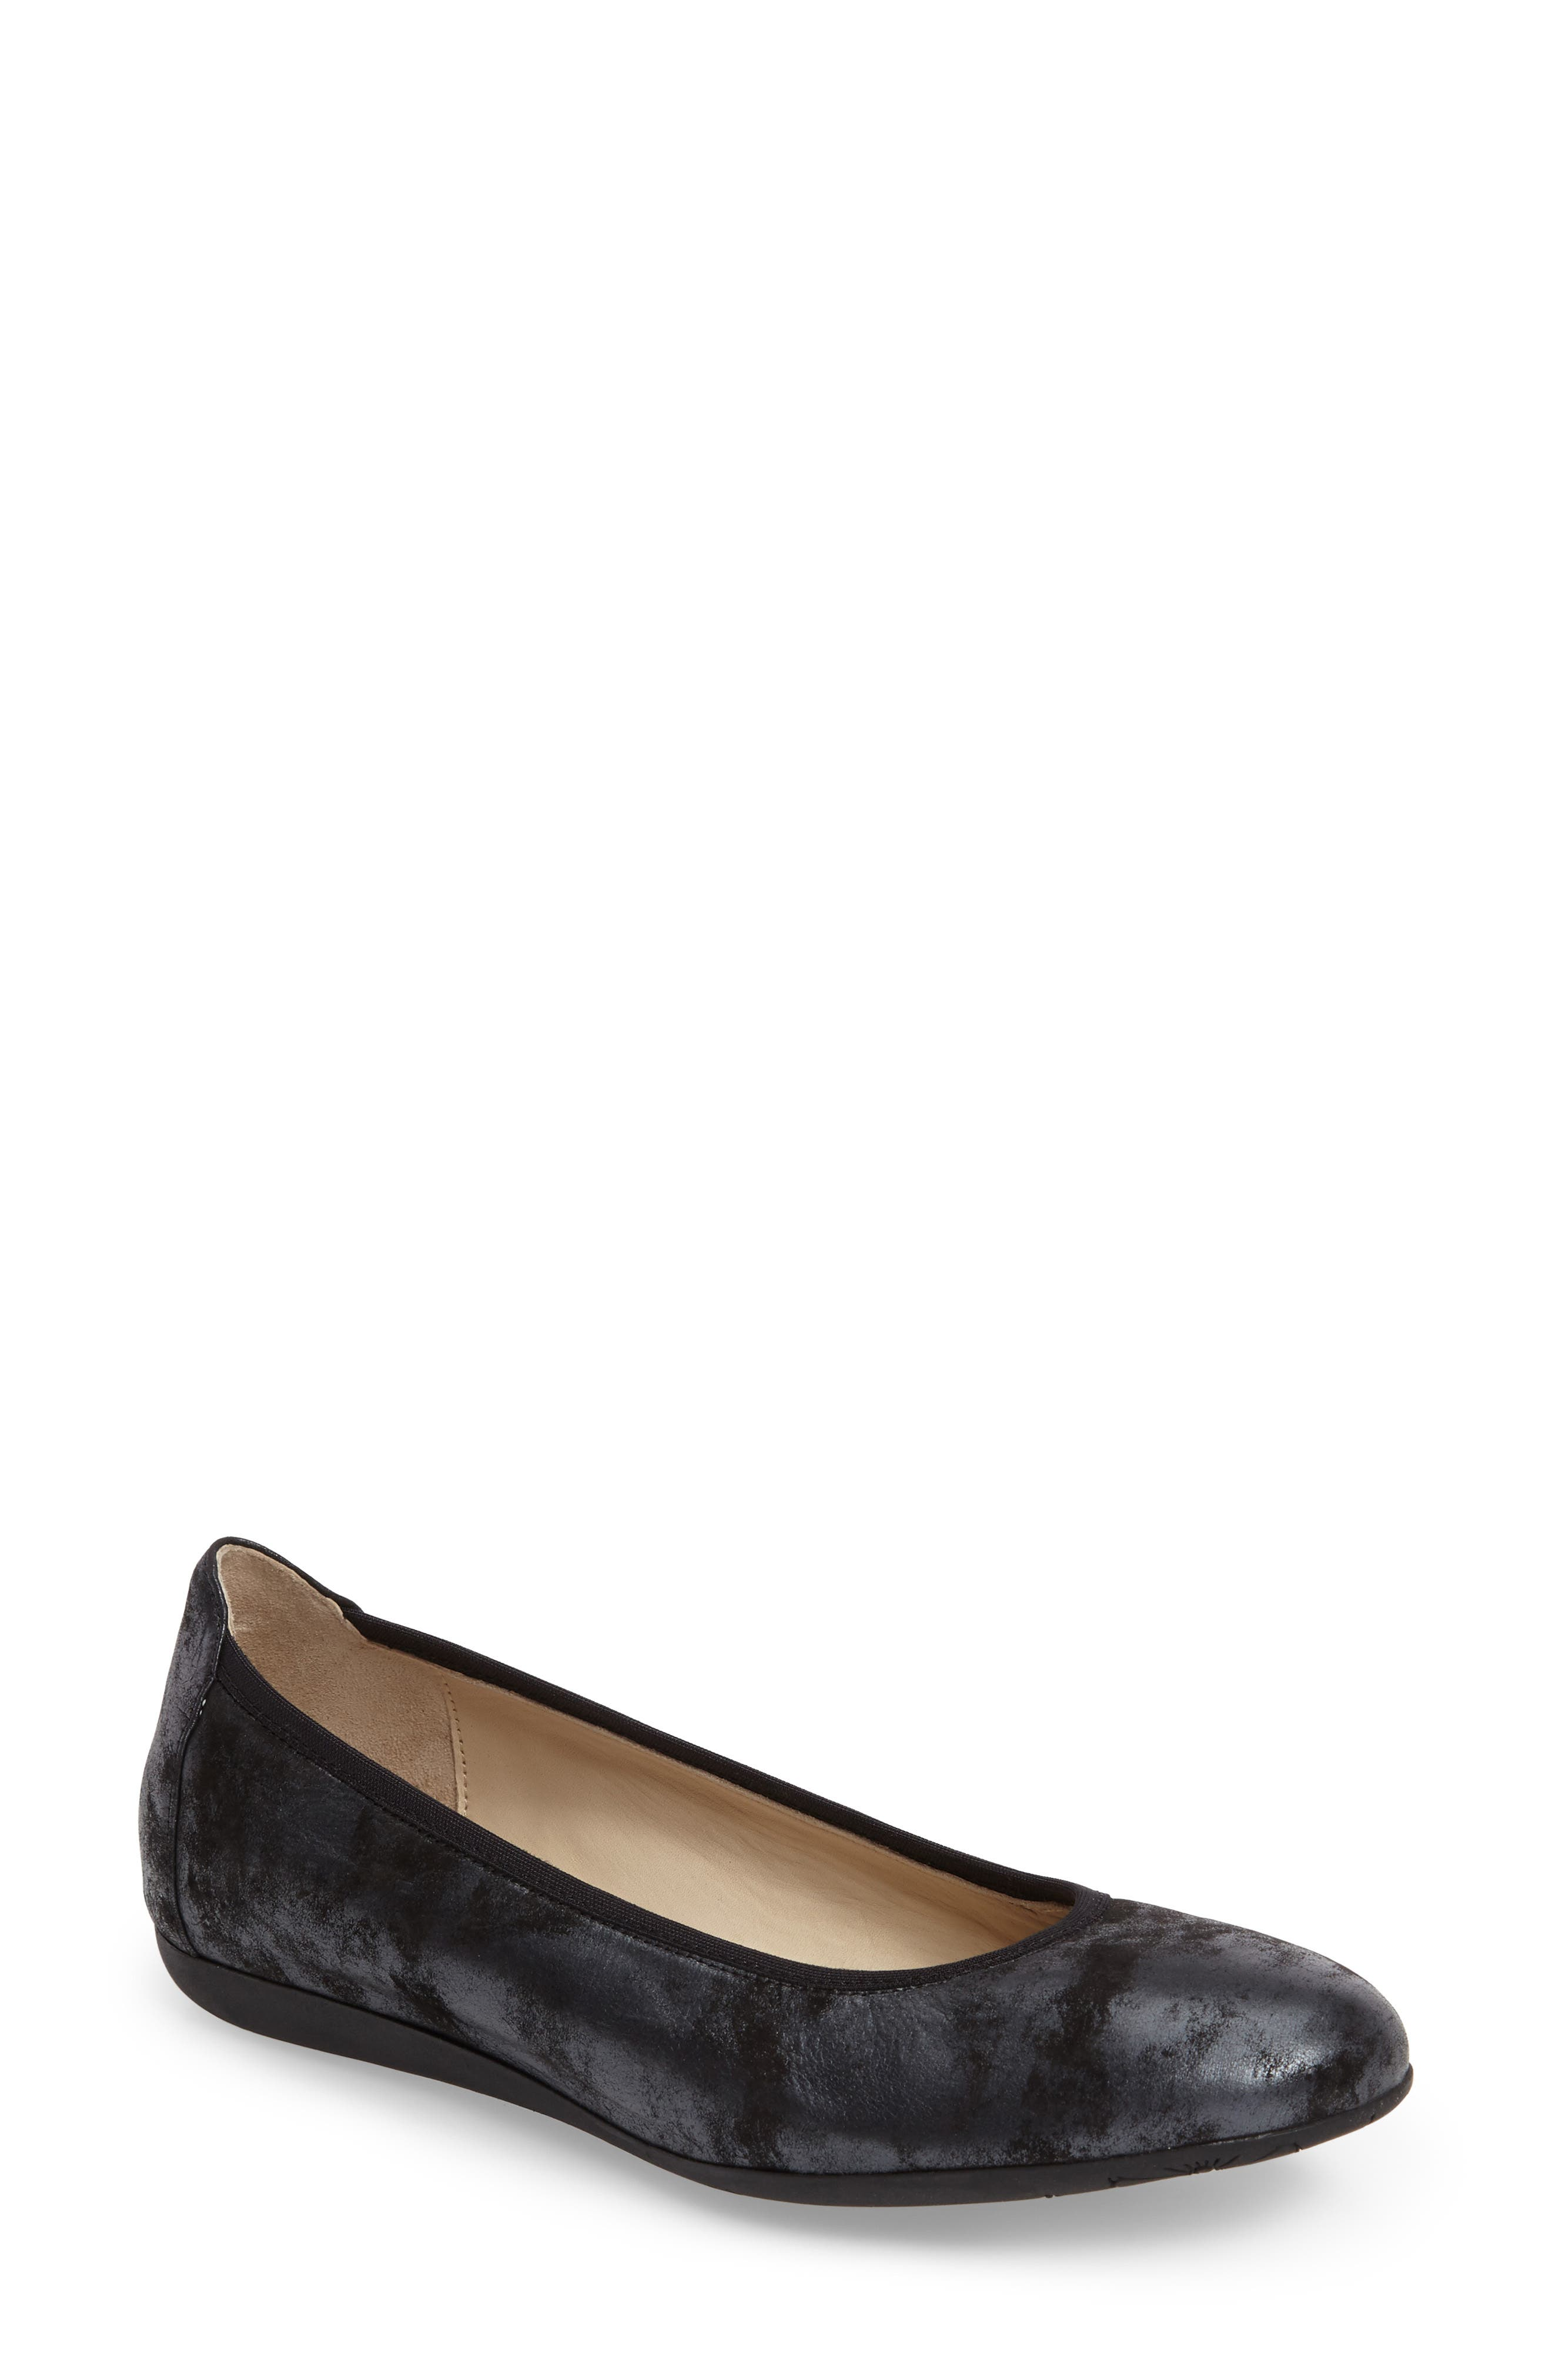 Main Image - Wolky Tampa Sacchetto Ballet Flat (Women)